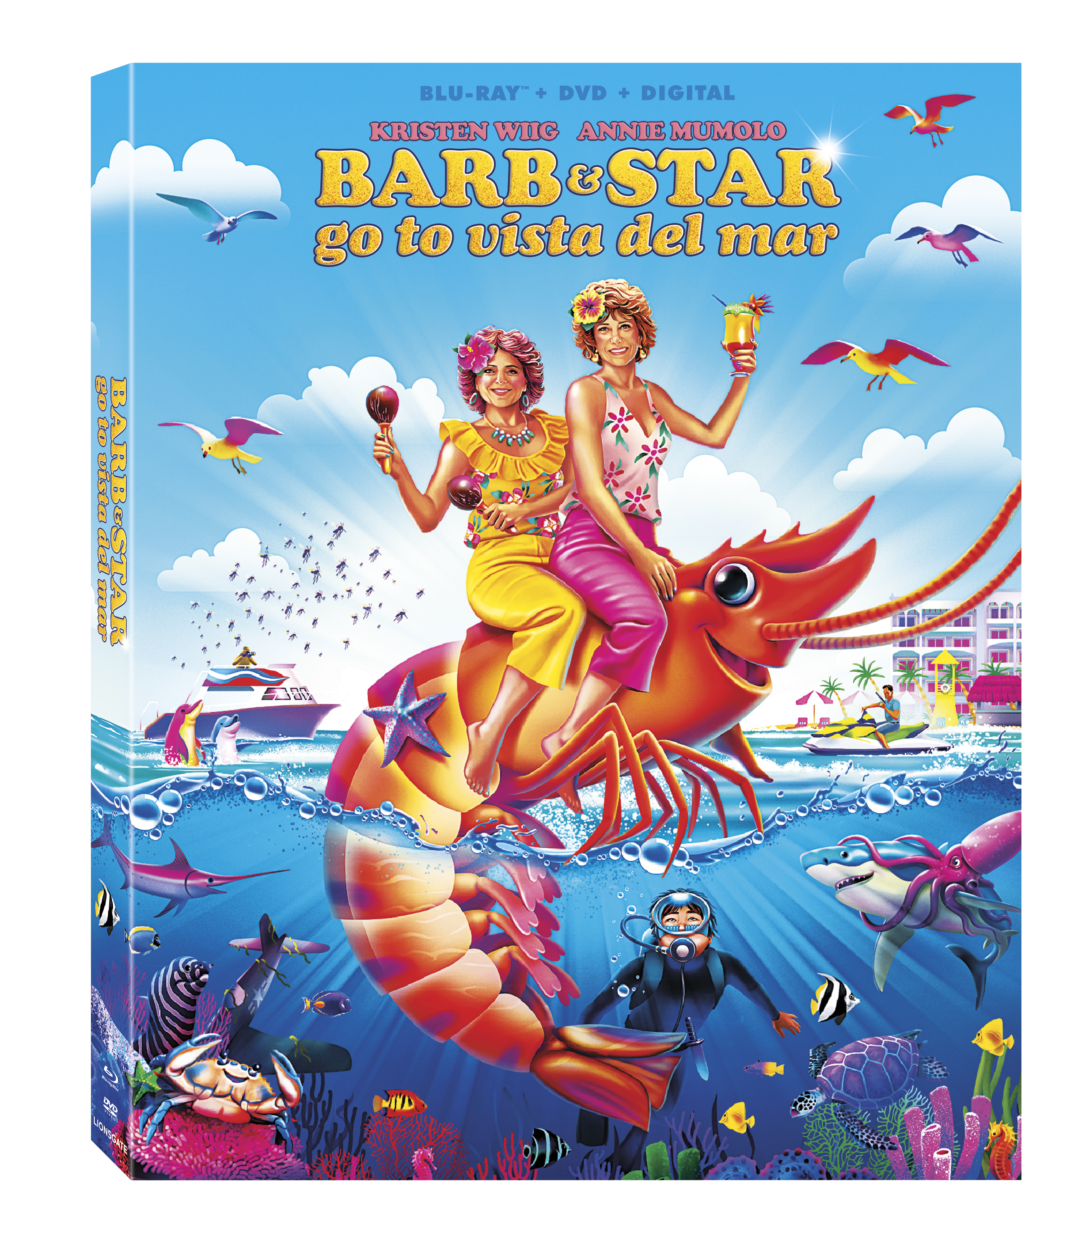 Get the Blu-ray/DVD/Digital Combo Pack of BARB & STAR GO TO VISTA DEL MAR